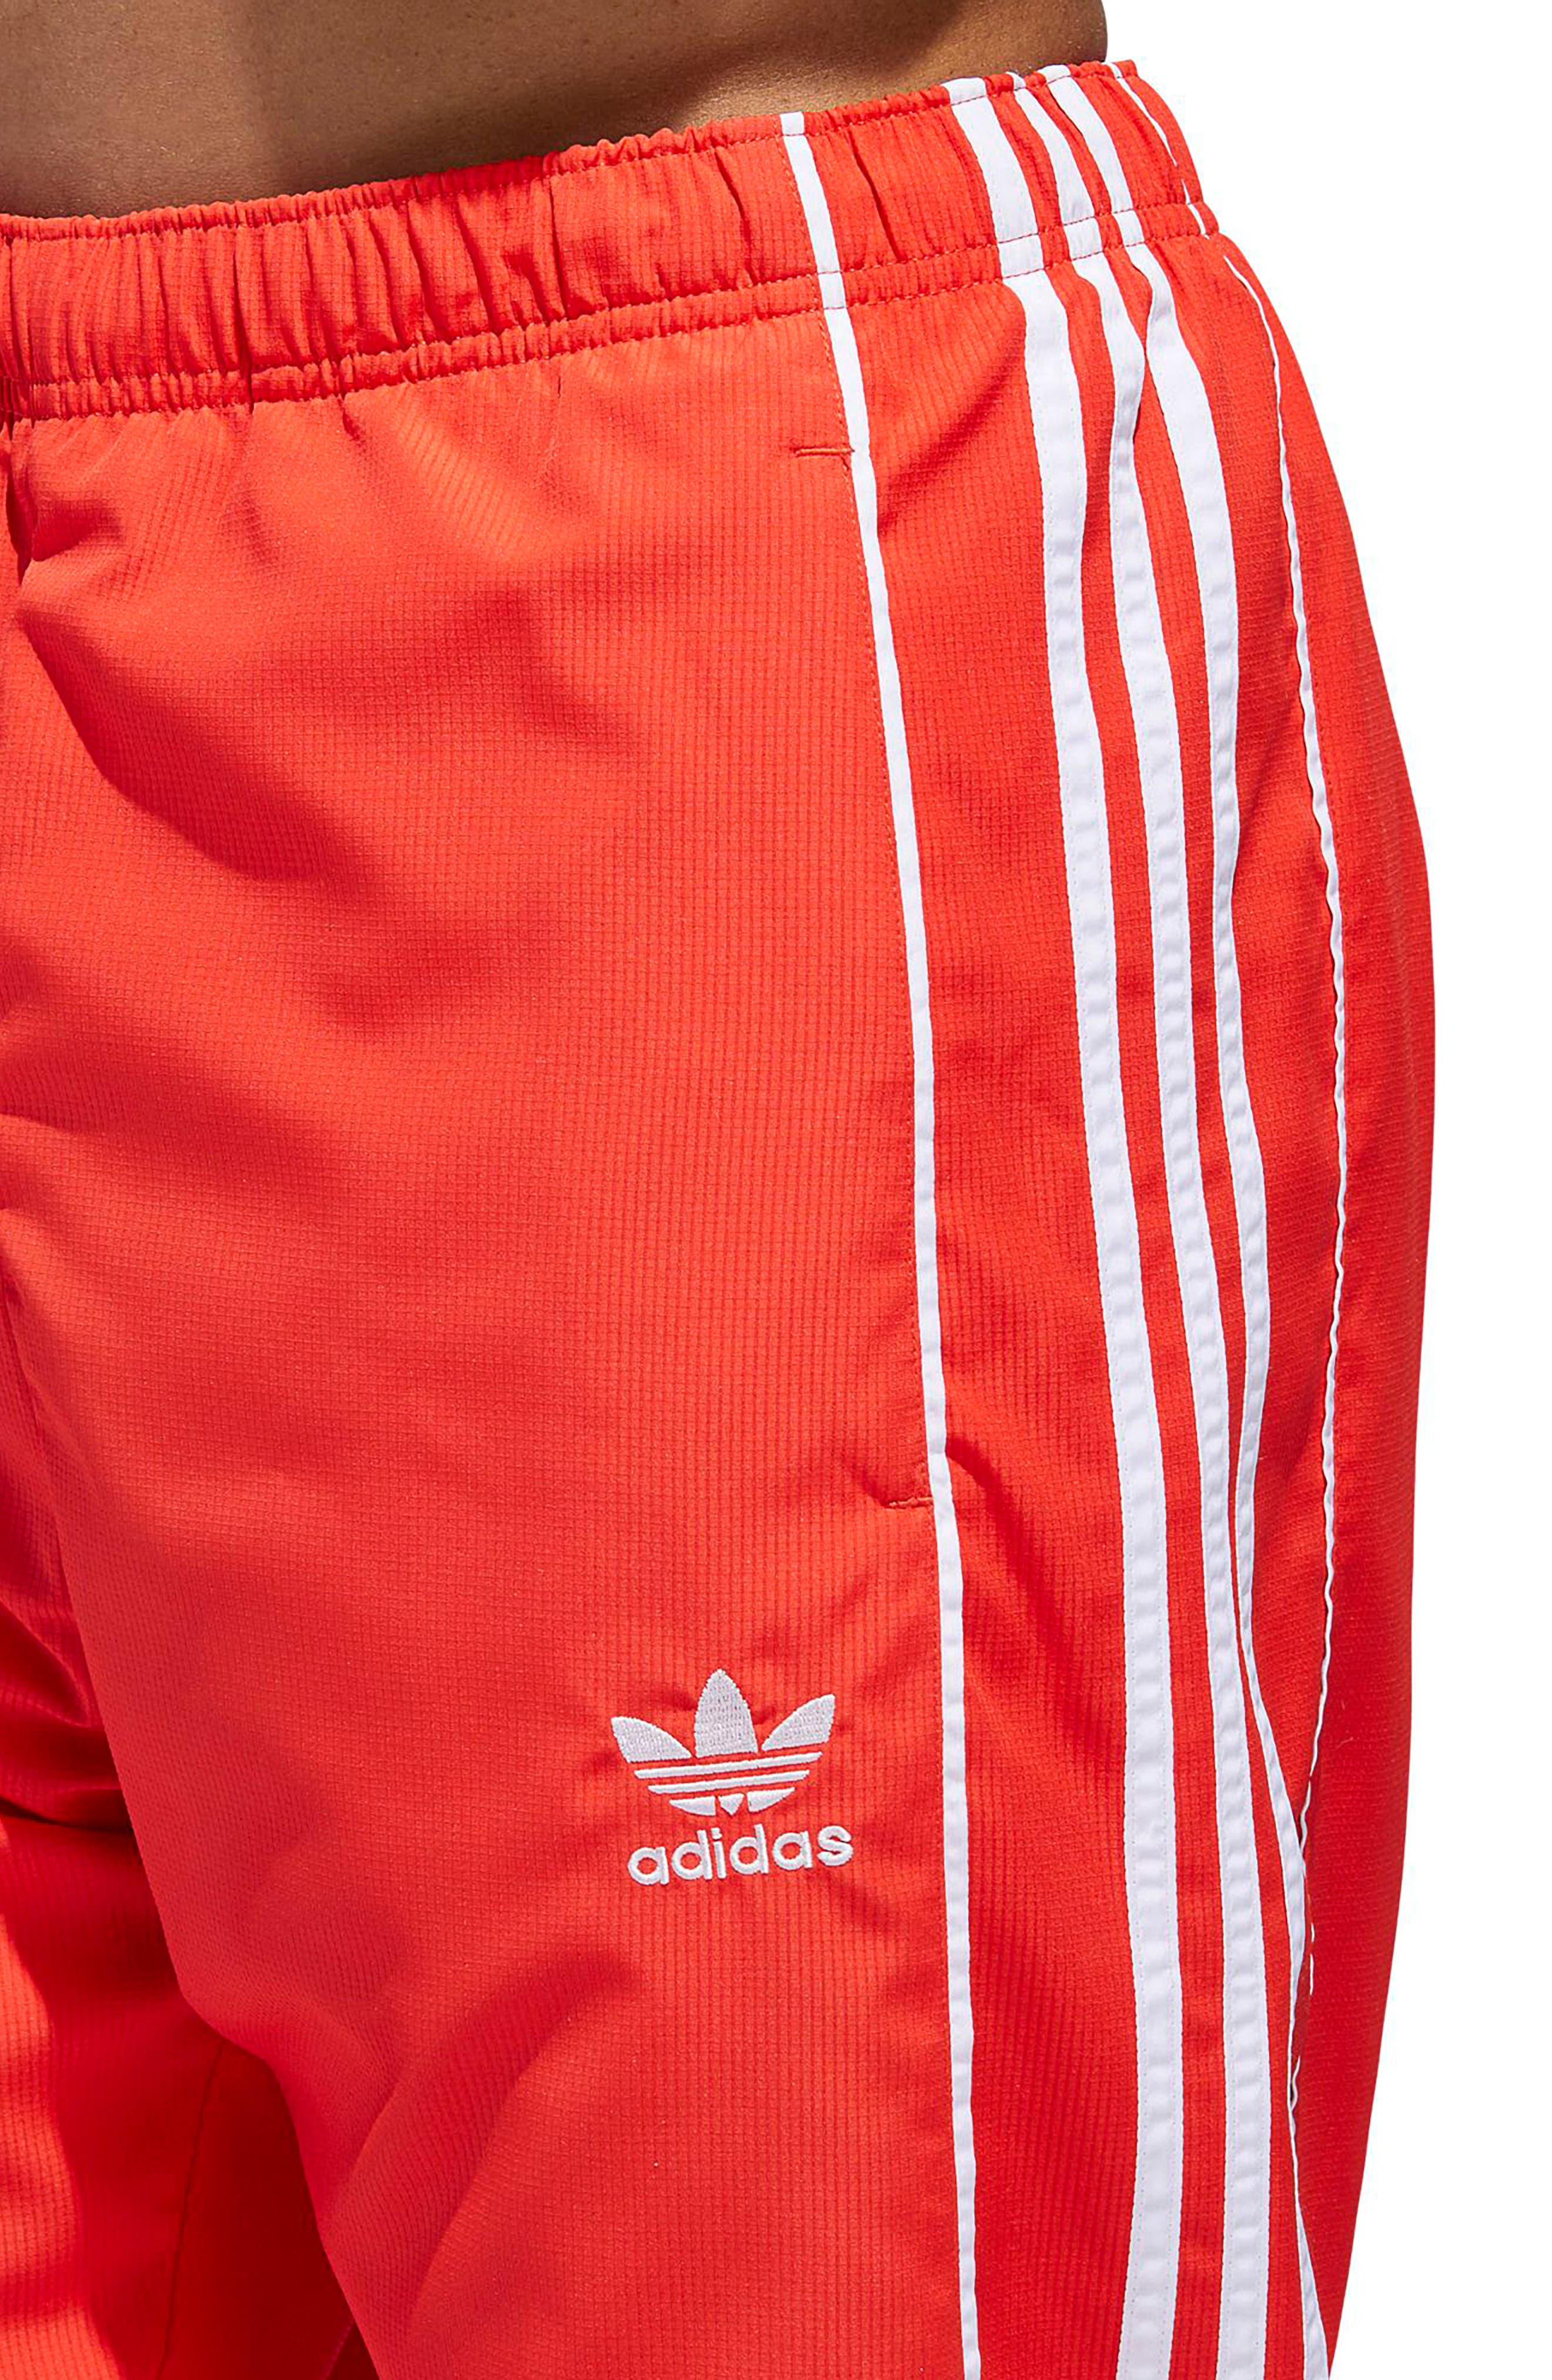 Authentics Ripstop Track Pants,                             Alternate thumbnail 6, color,                             HI-RES RED/ WHITE